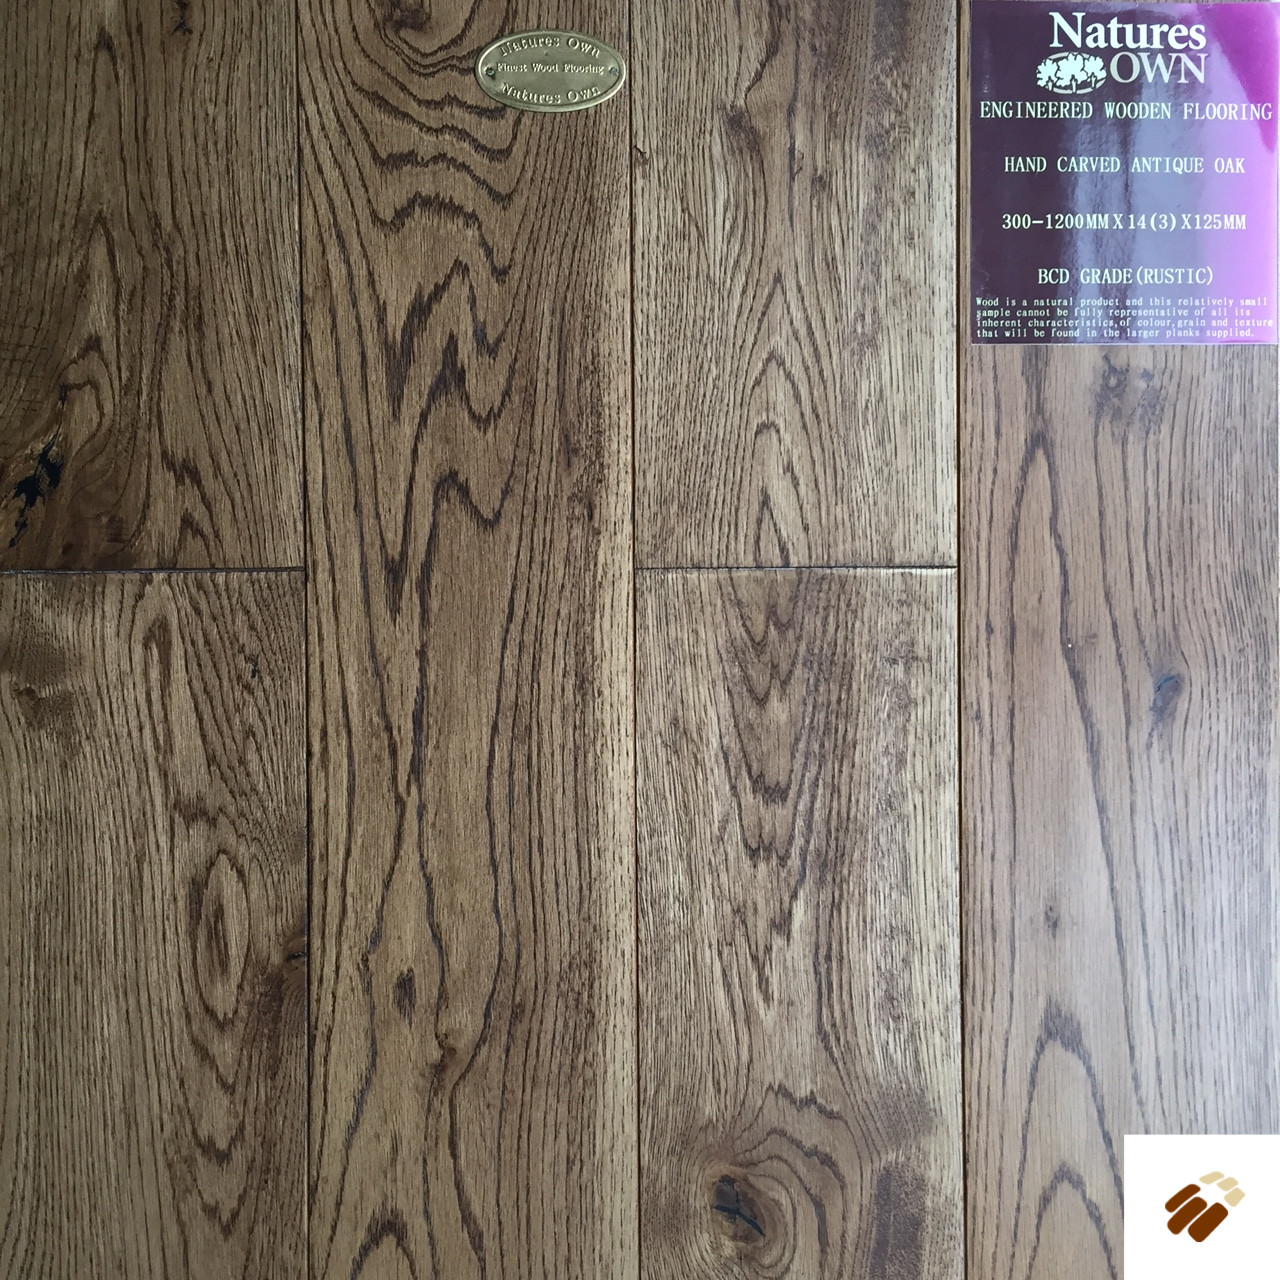 NATURES OWN: Antique Oak Hand Carved & UV Lacquered (14/3 x 125mm)-0